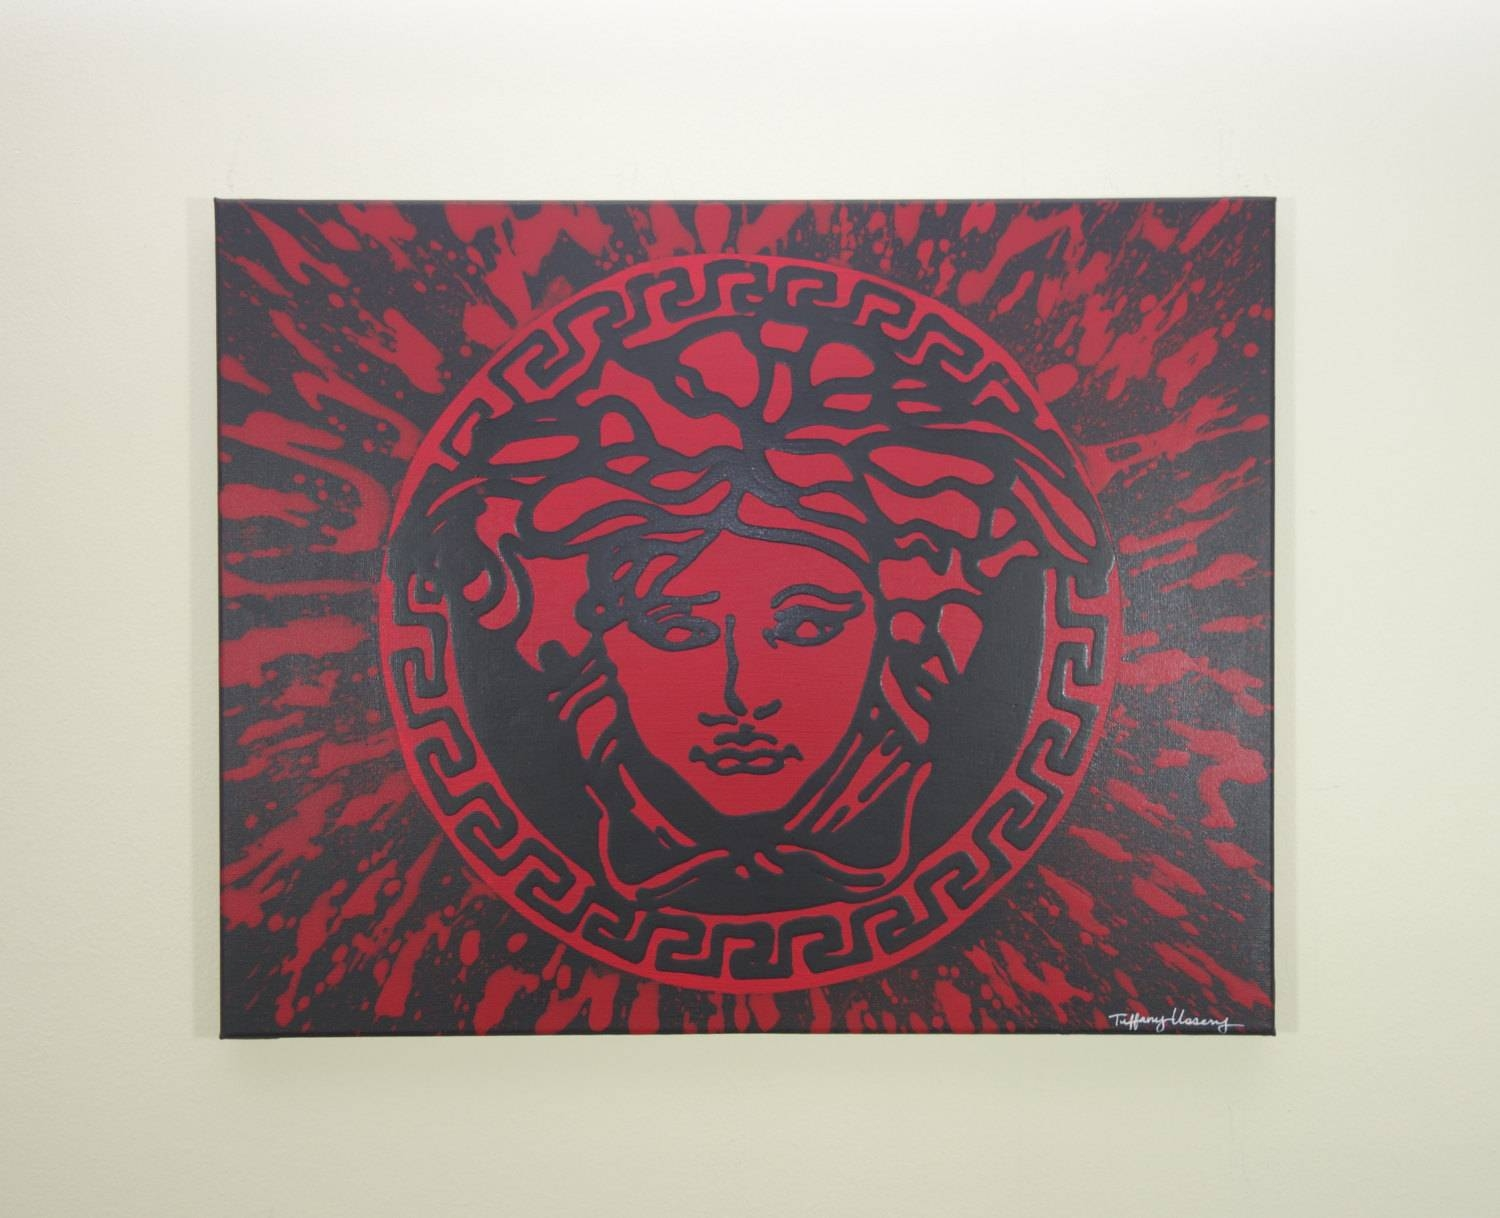 Versace Medusa Painting 24X24 Versace Inspired Pop Art regarding Most Current Versace Wall Art